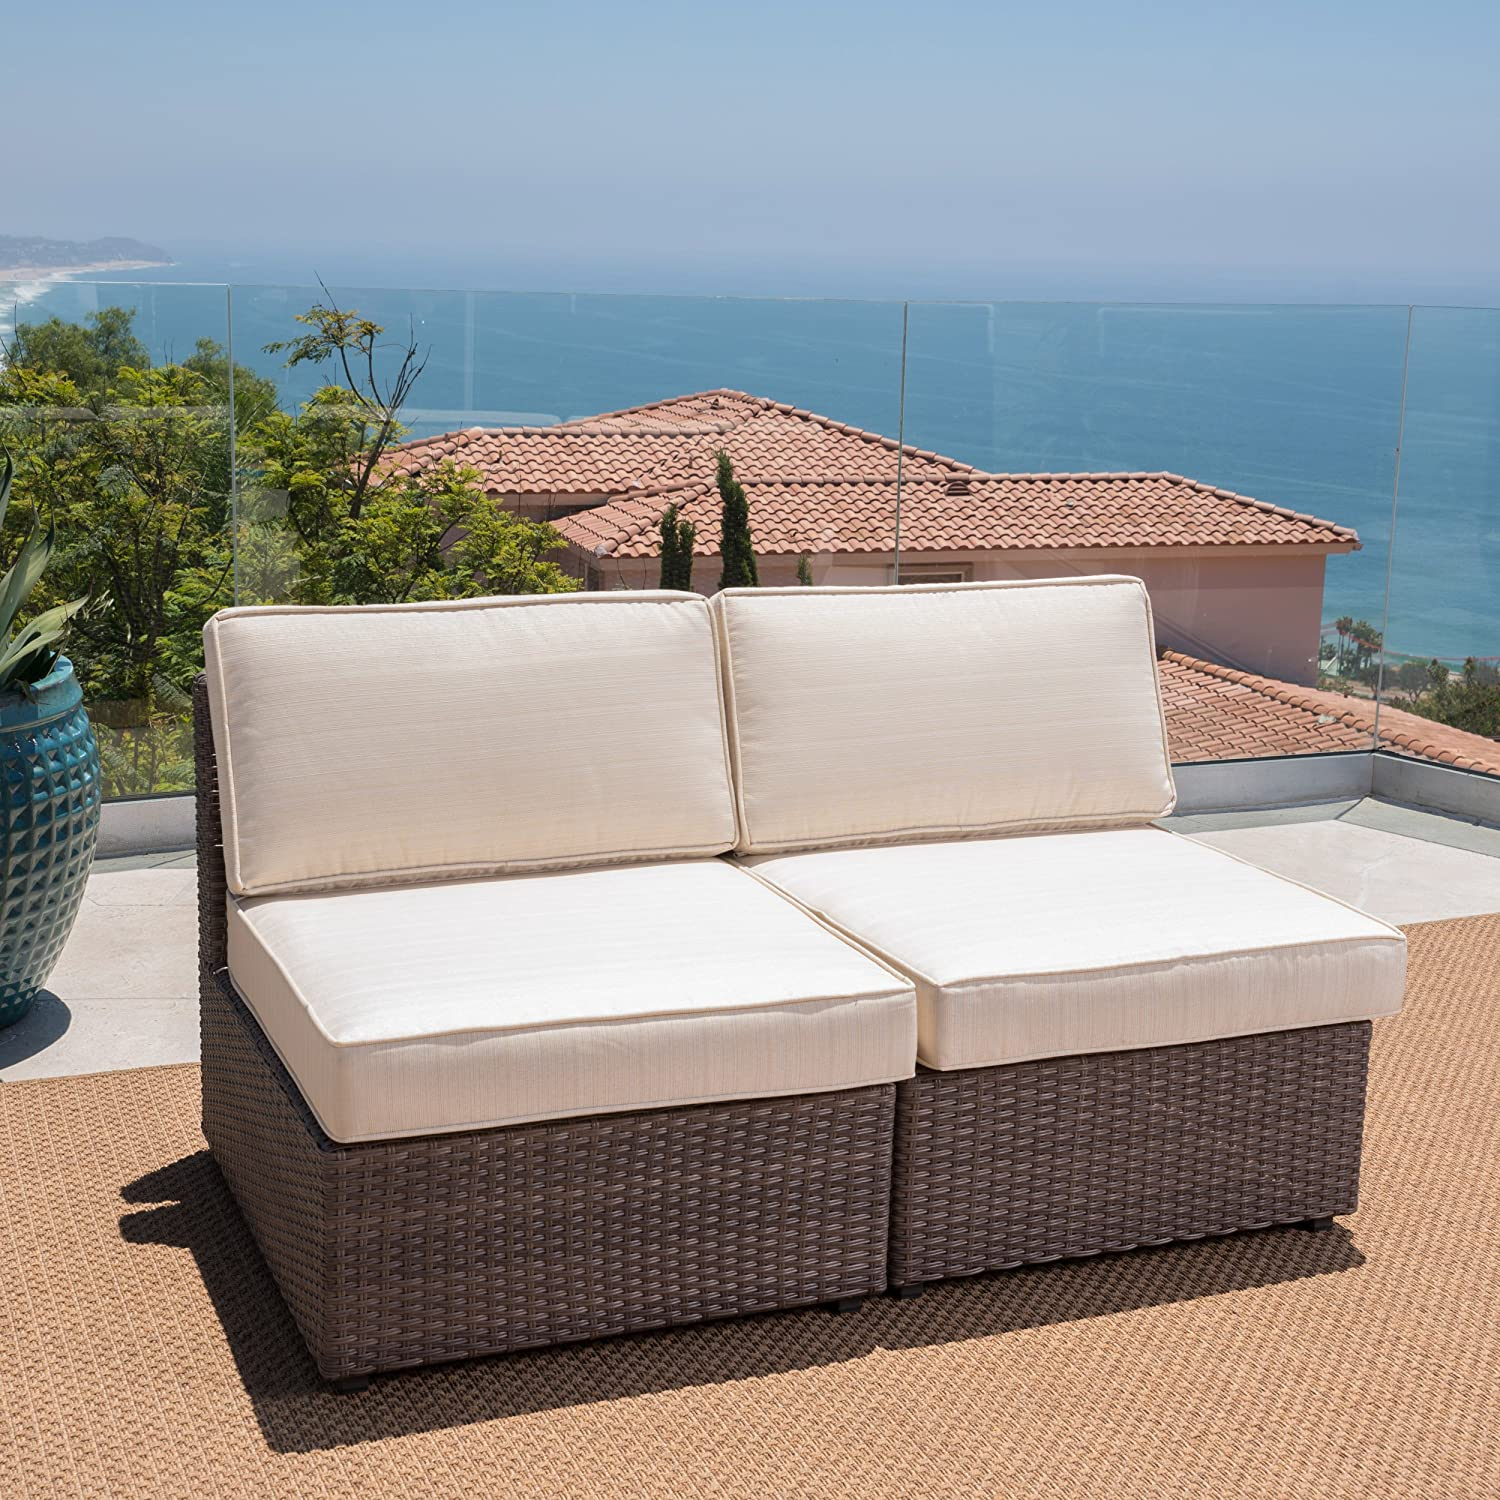 Christopher Knight Home GDF Studio Set of 2 Santa Cruz Outdoor Hazelnut Brown Wicker Armless Sectional Sofa Seat with Beige Water Resistant Cushions